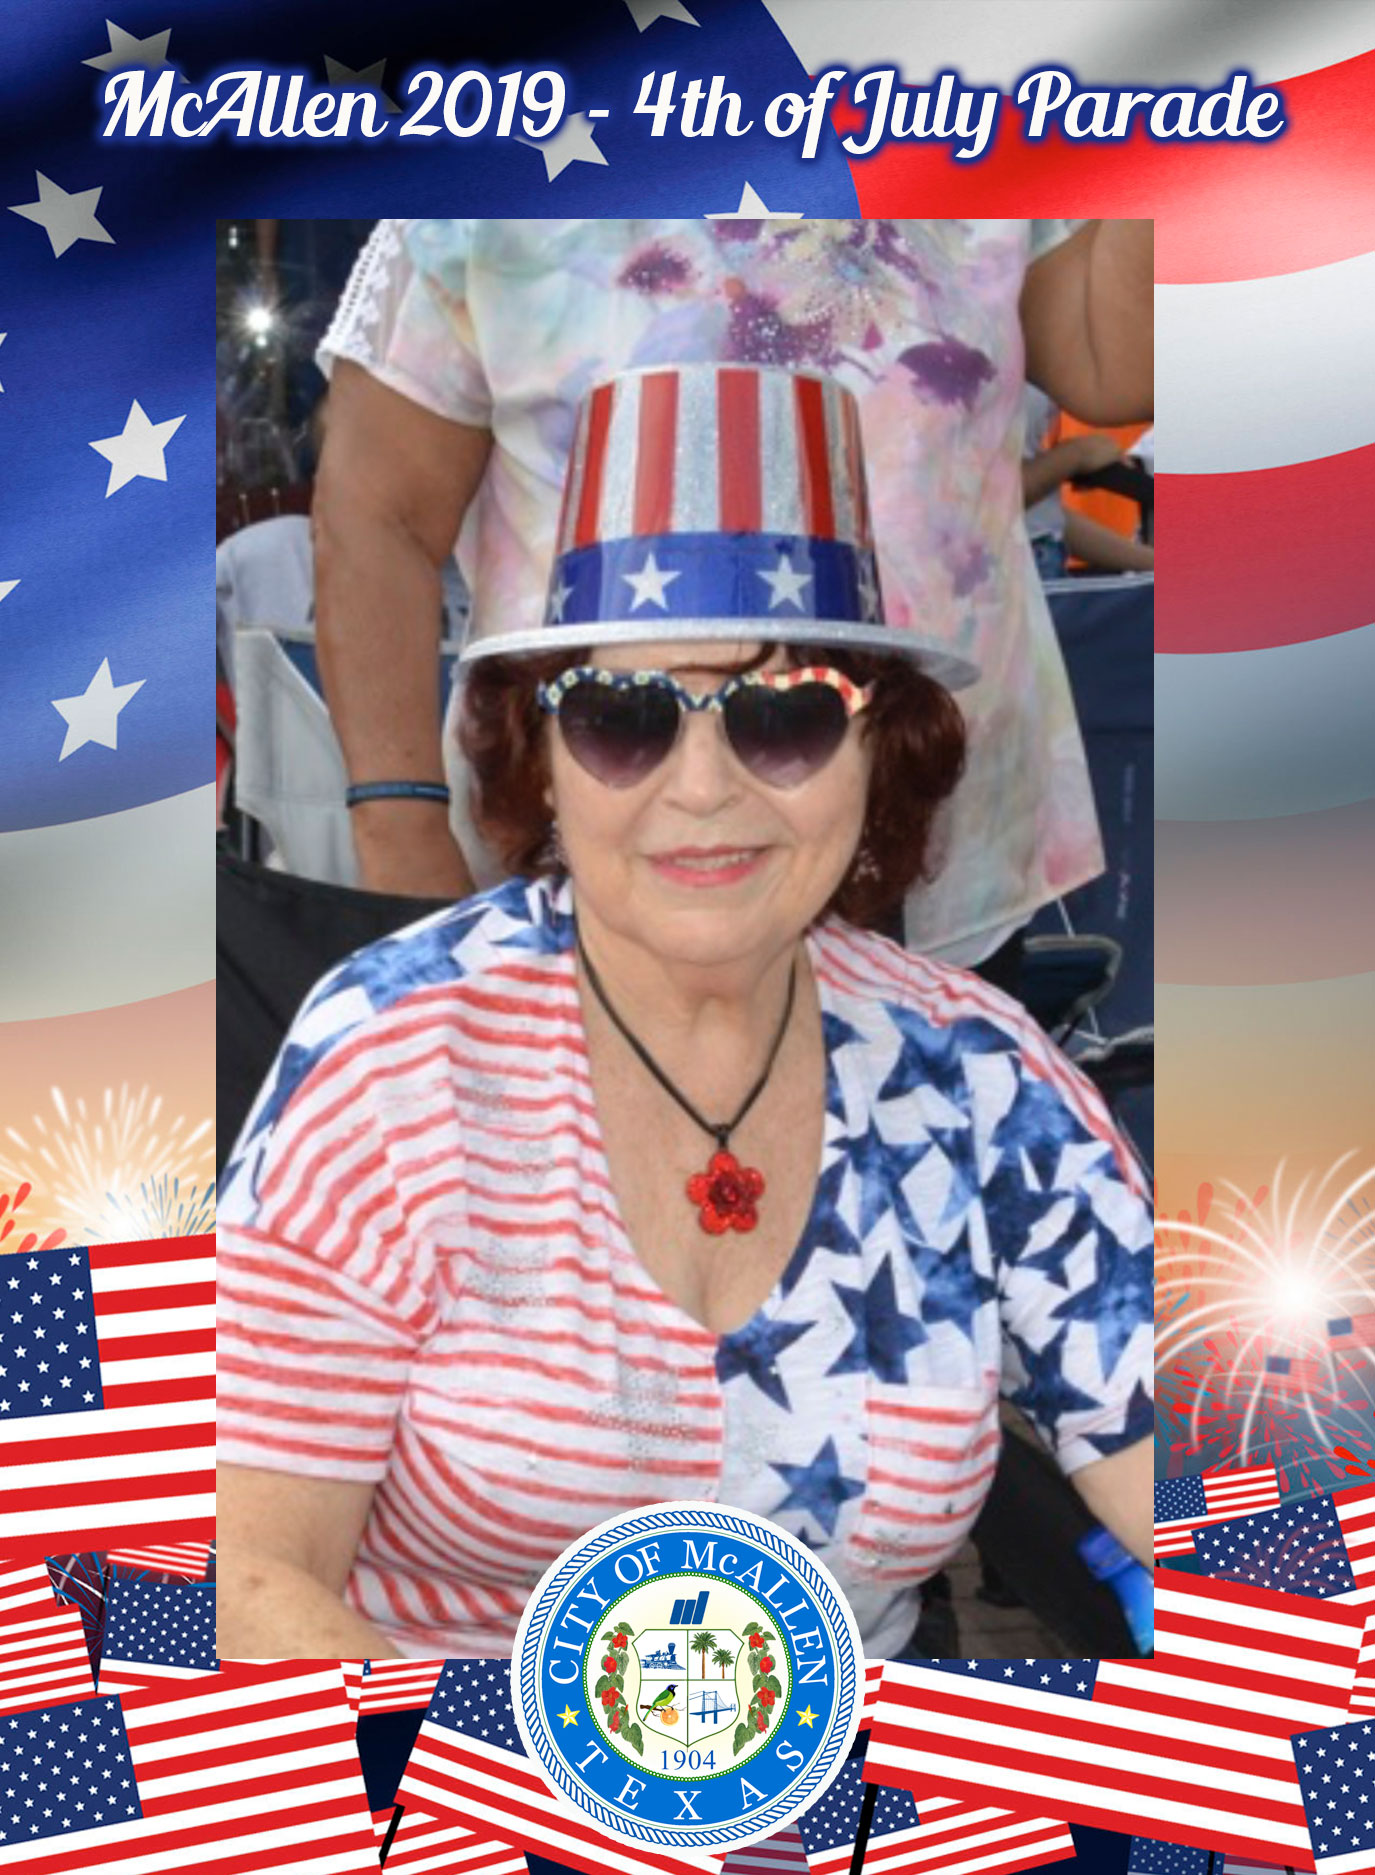 McAllen 4th of July Parade 2019 – Faces Part 4